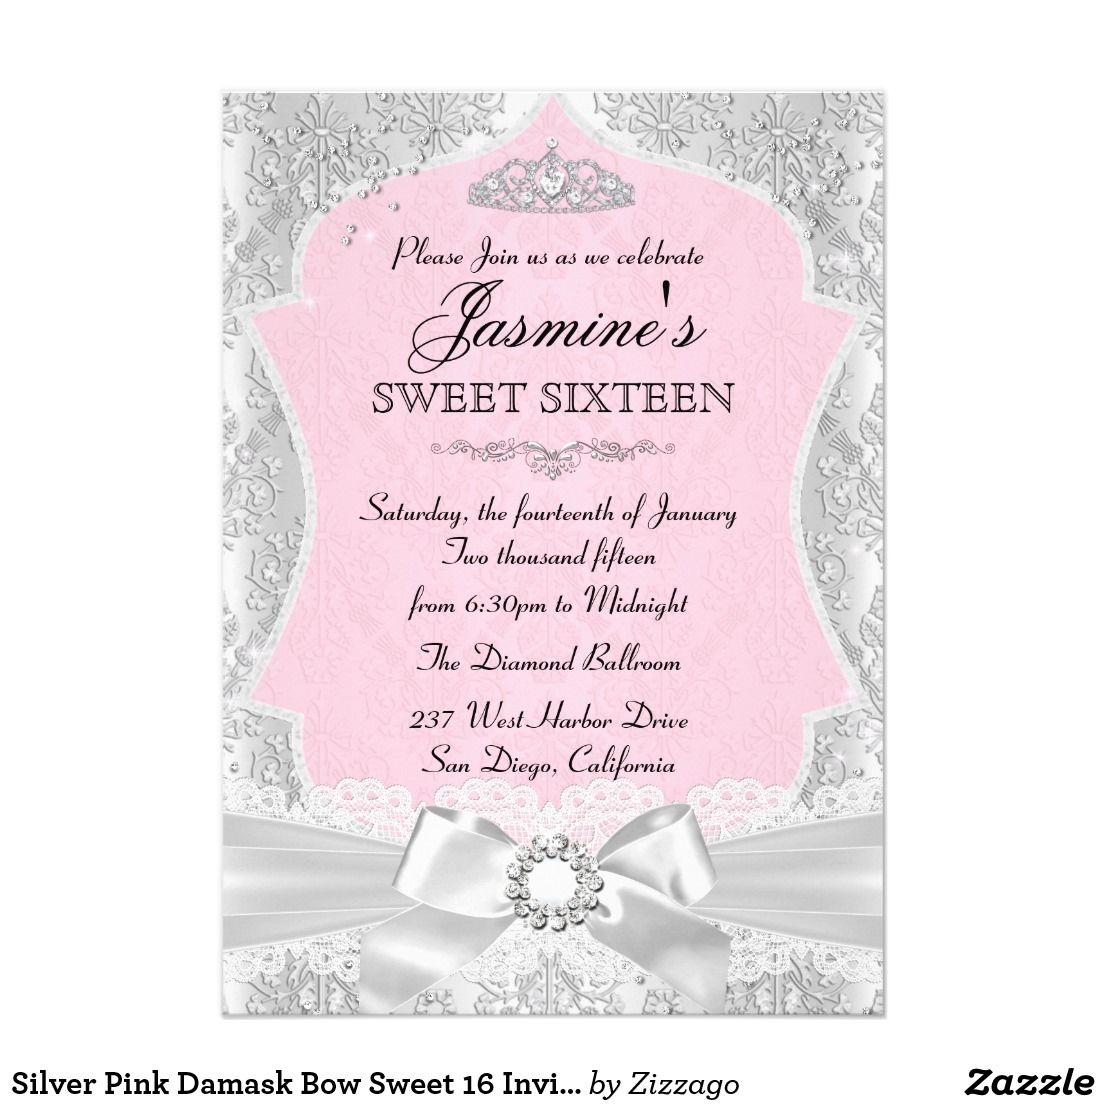 Silver Pink Damask Bow Sweet 16 Invitation | Invitation cards ...